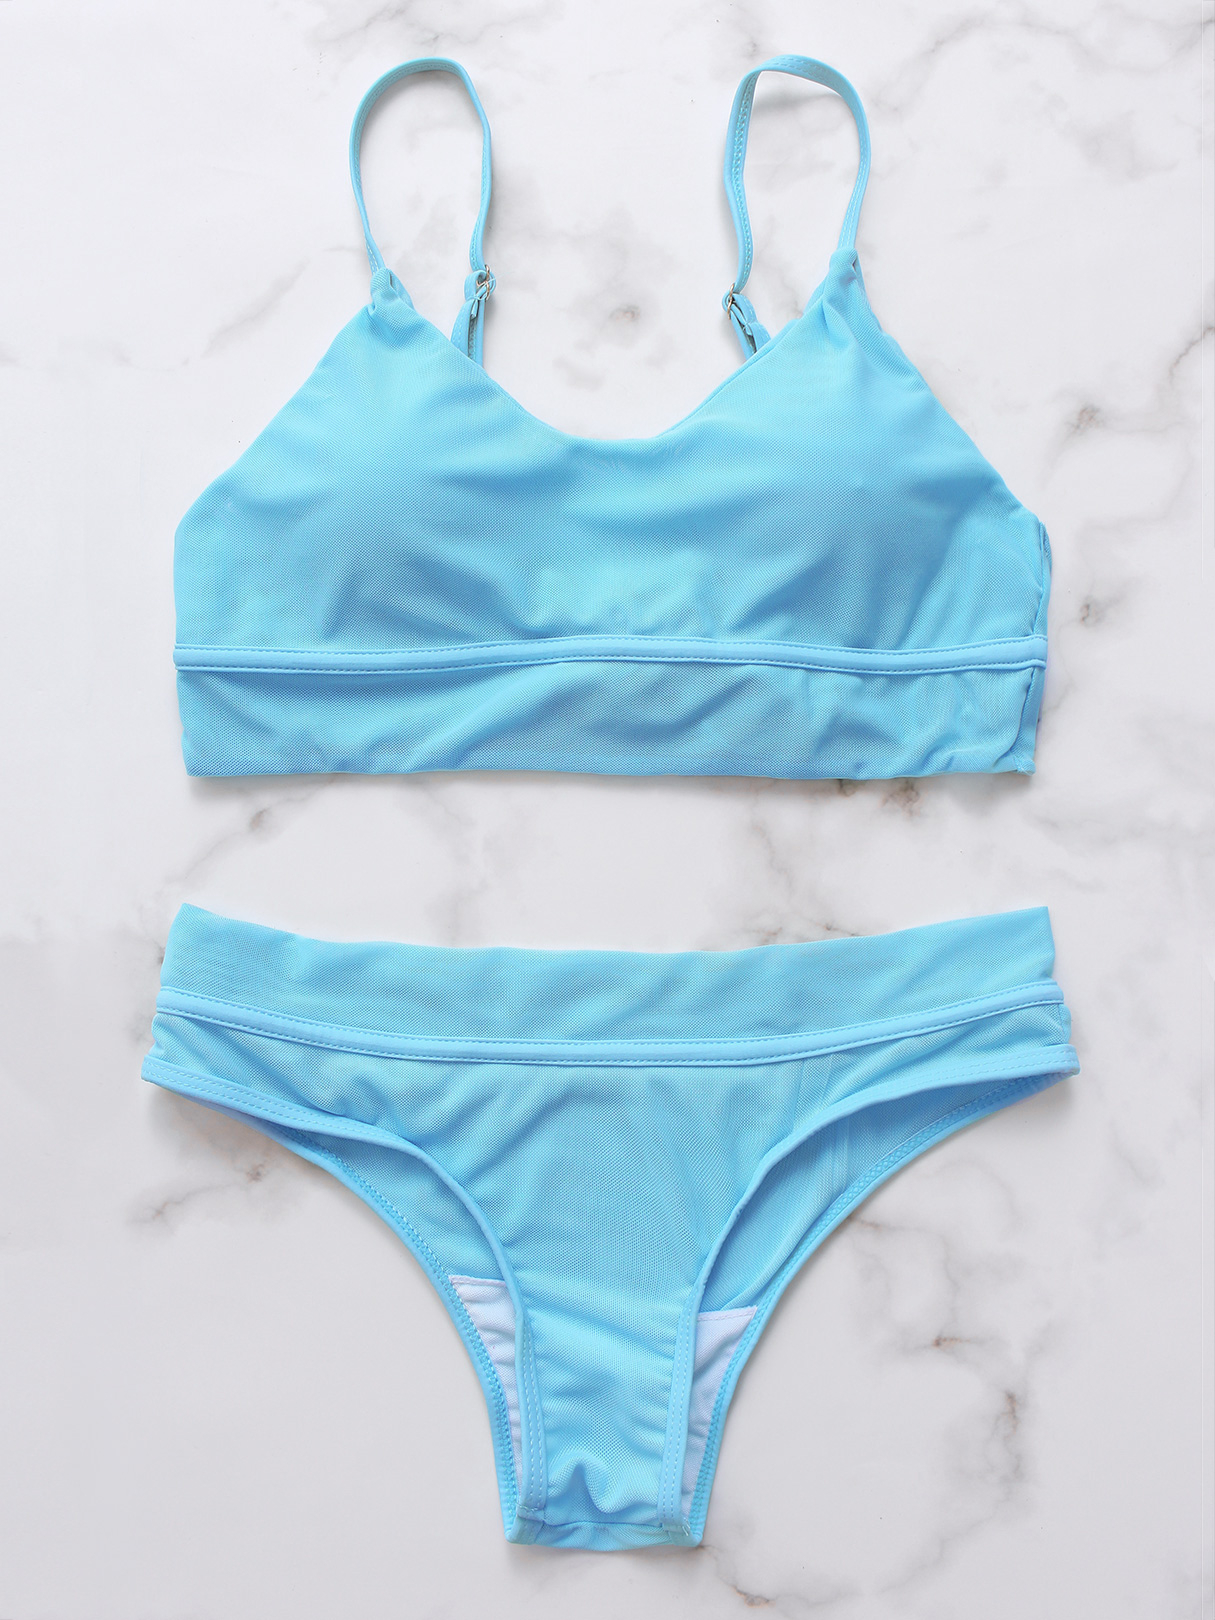 Blue Mesh Criss-cross Back High Waist Bikini Set criss cross back padded camisole